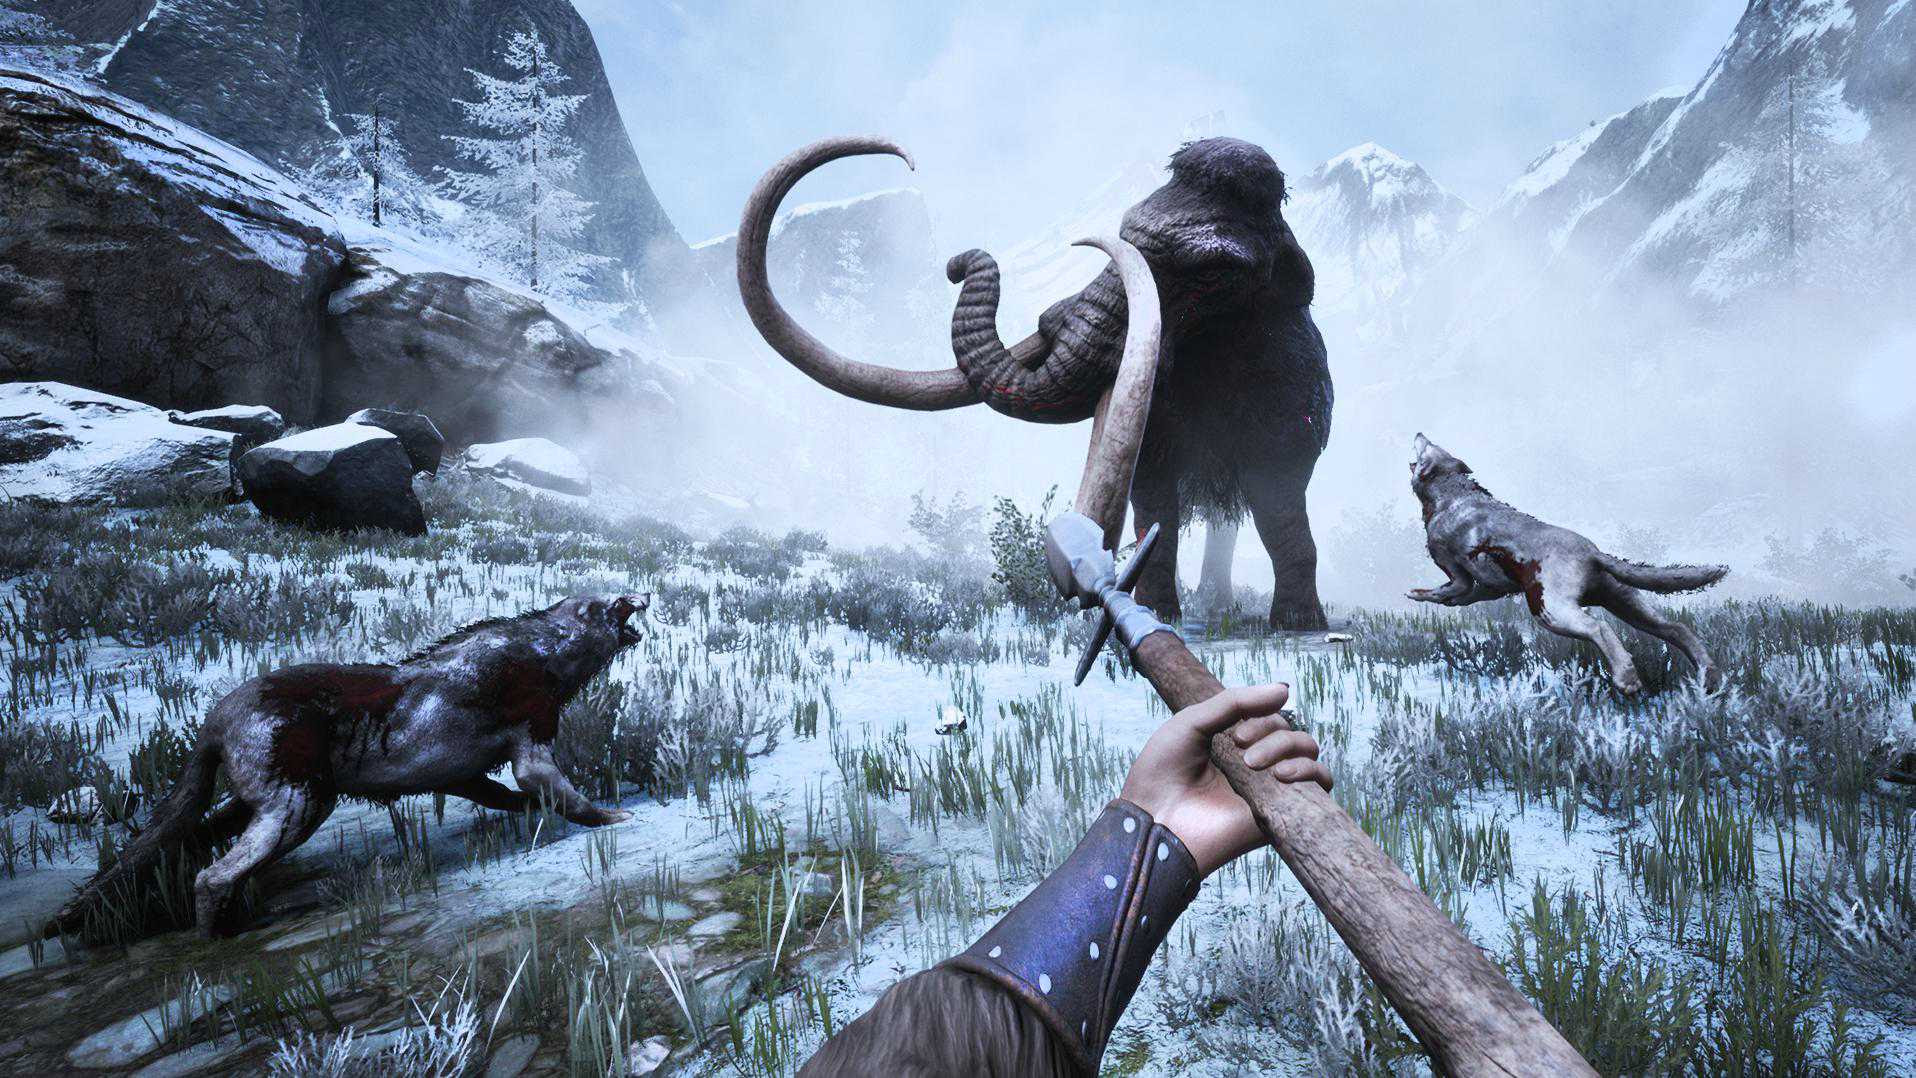 Funcom takes Conan Exiles to the Frozen North this month